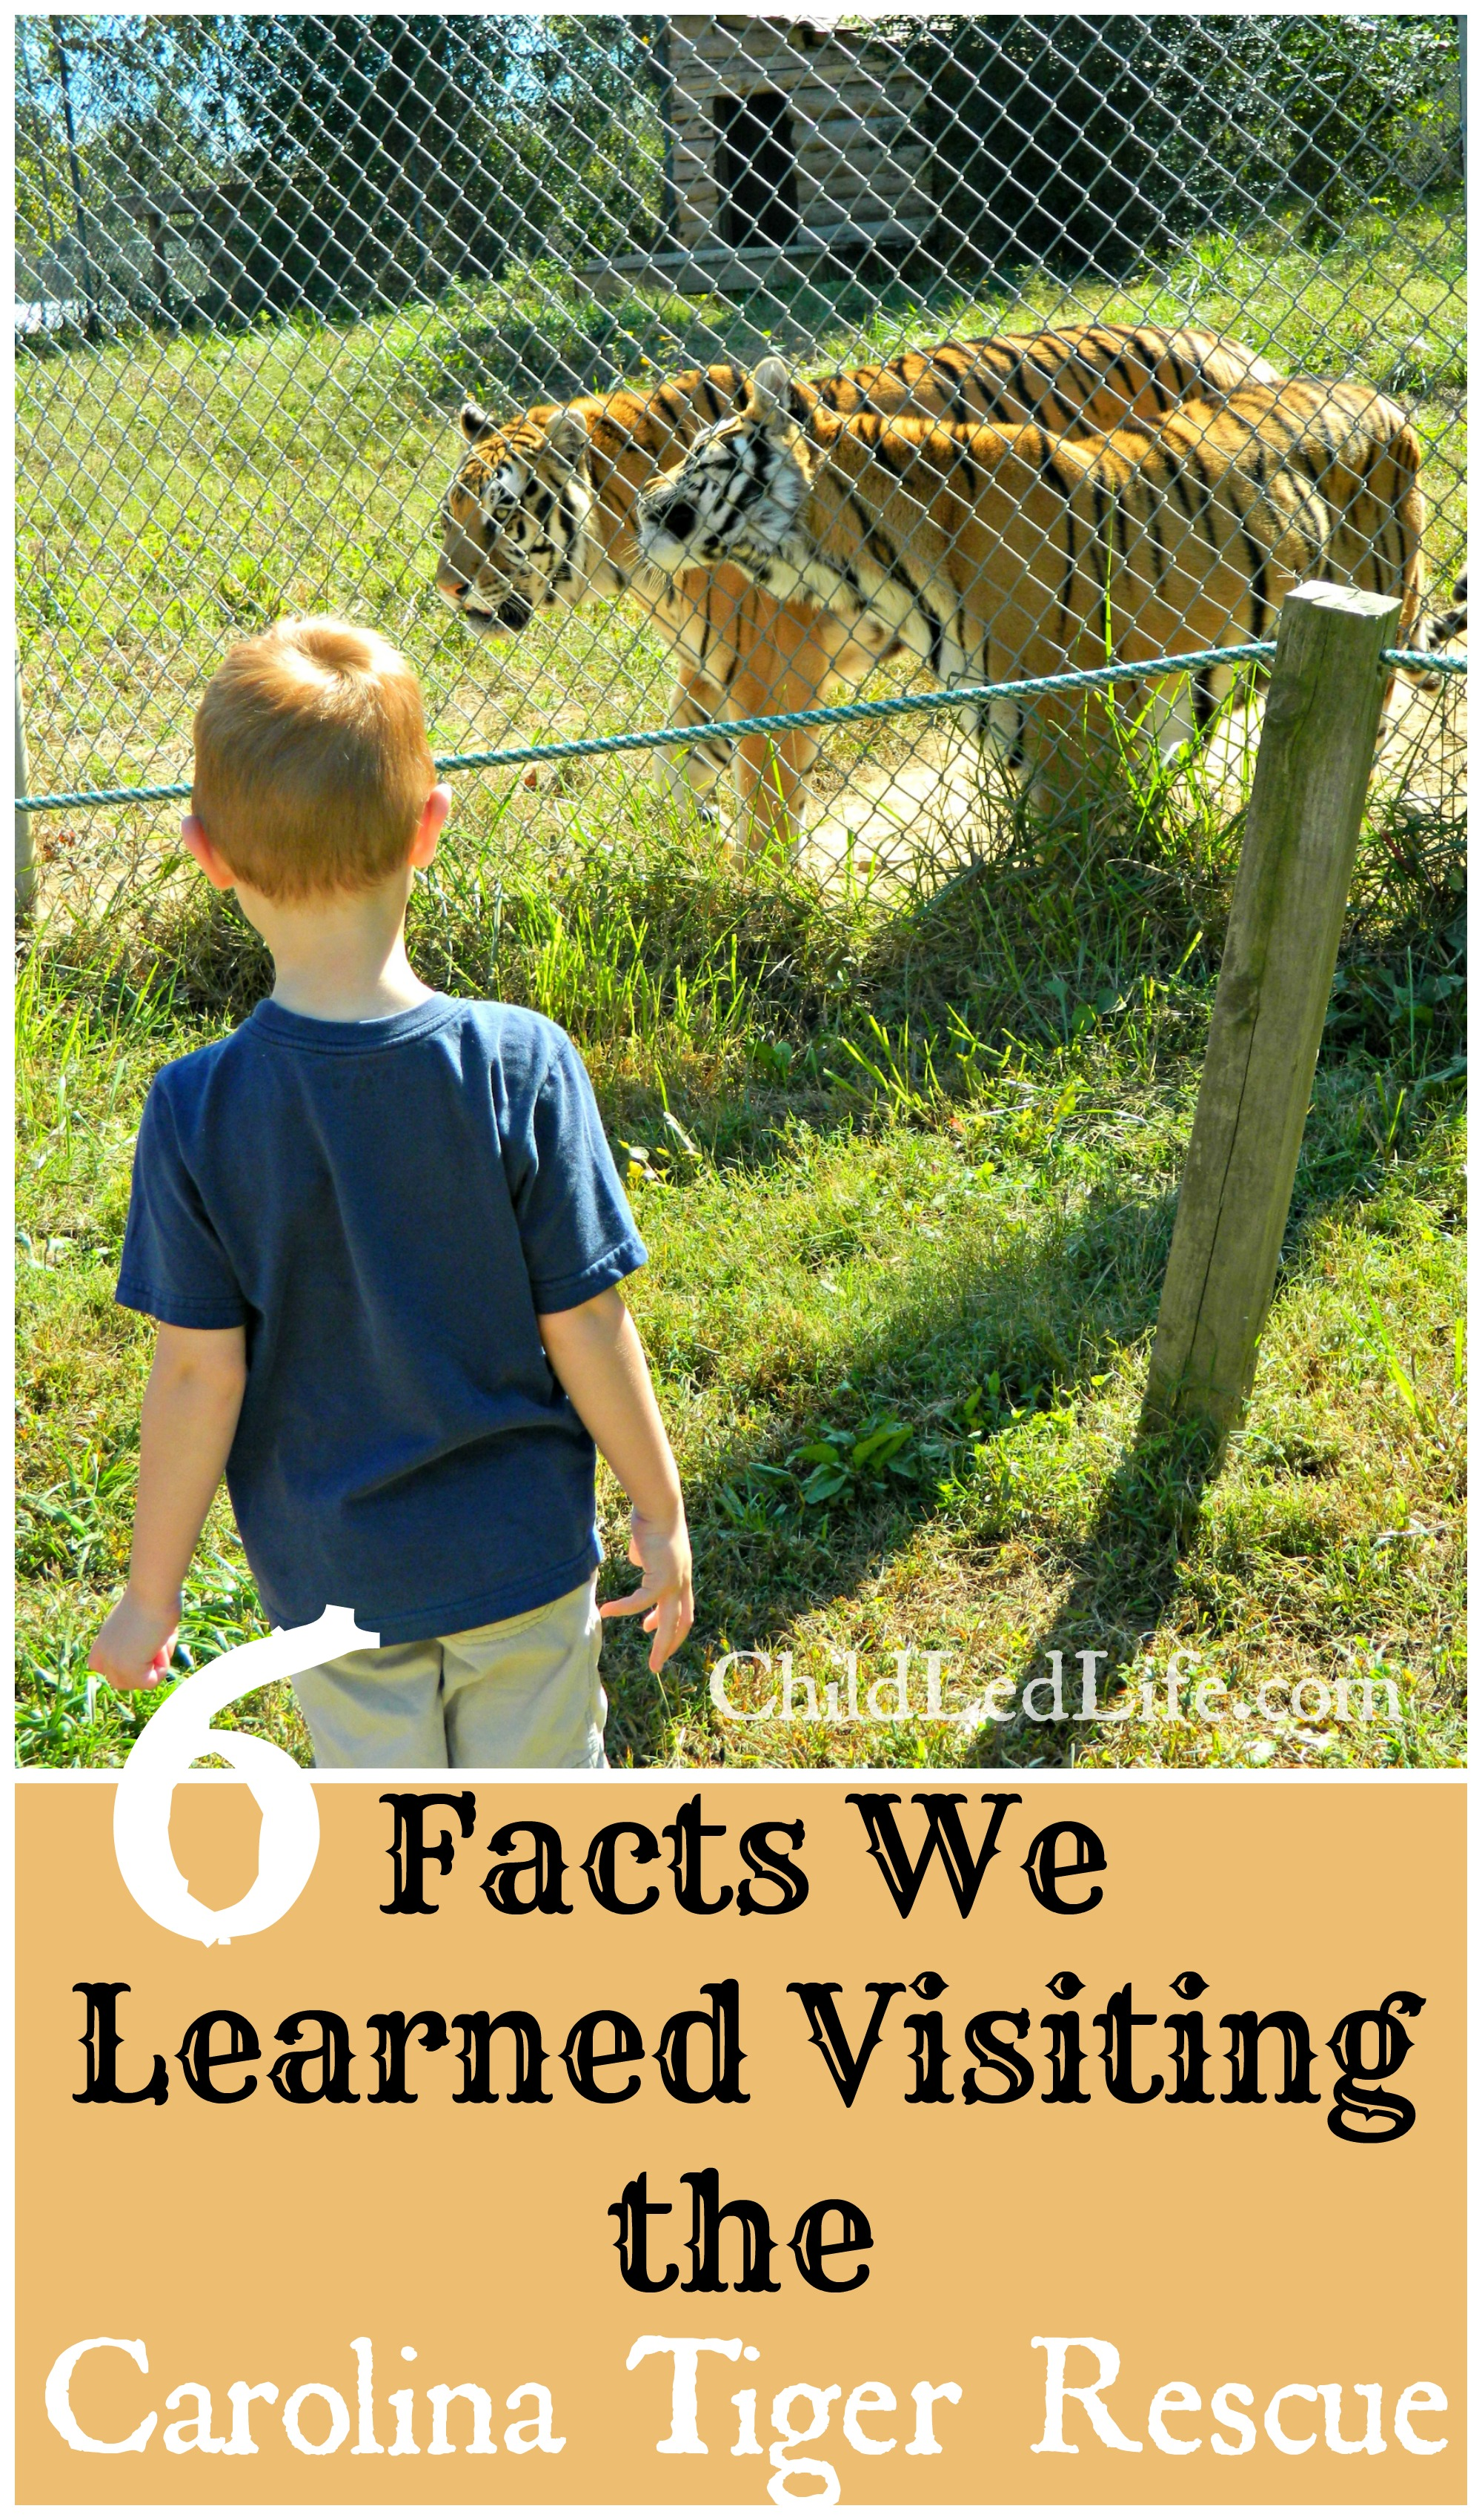 6 Facts We Learned Visiting the Carolina Tiger Rescue